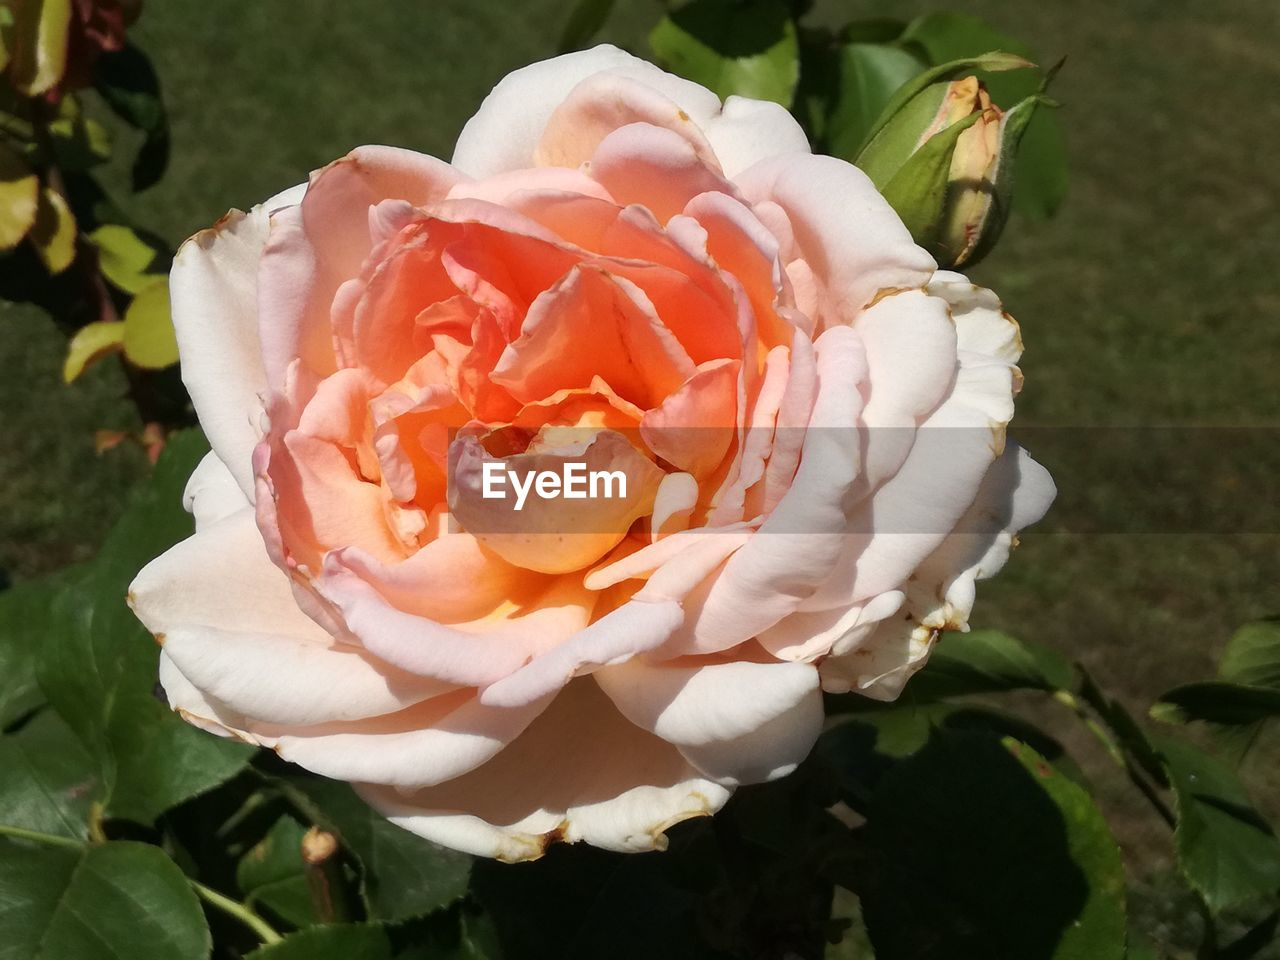 petal, flower, flower head, rose - flower, nature, fragility, beauty in nature, growth, white color, close-up, plant, freshness, outdoors, no people, day, blooming